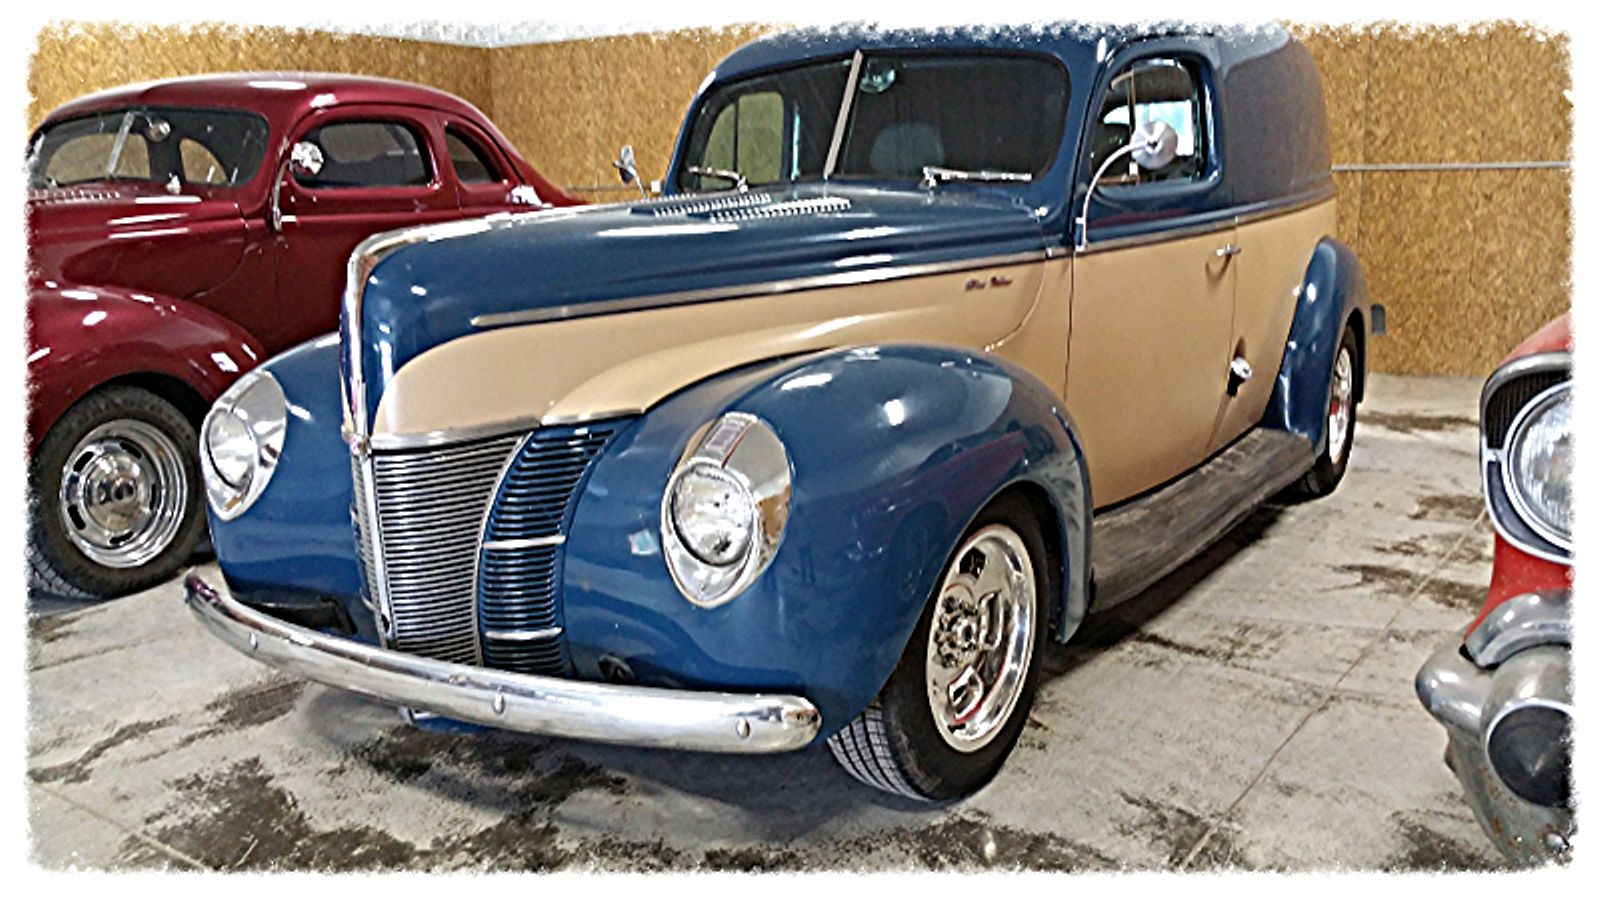 1940 Ford Sedan Delivery 1941 Panel Truck In Ohio